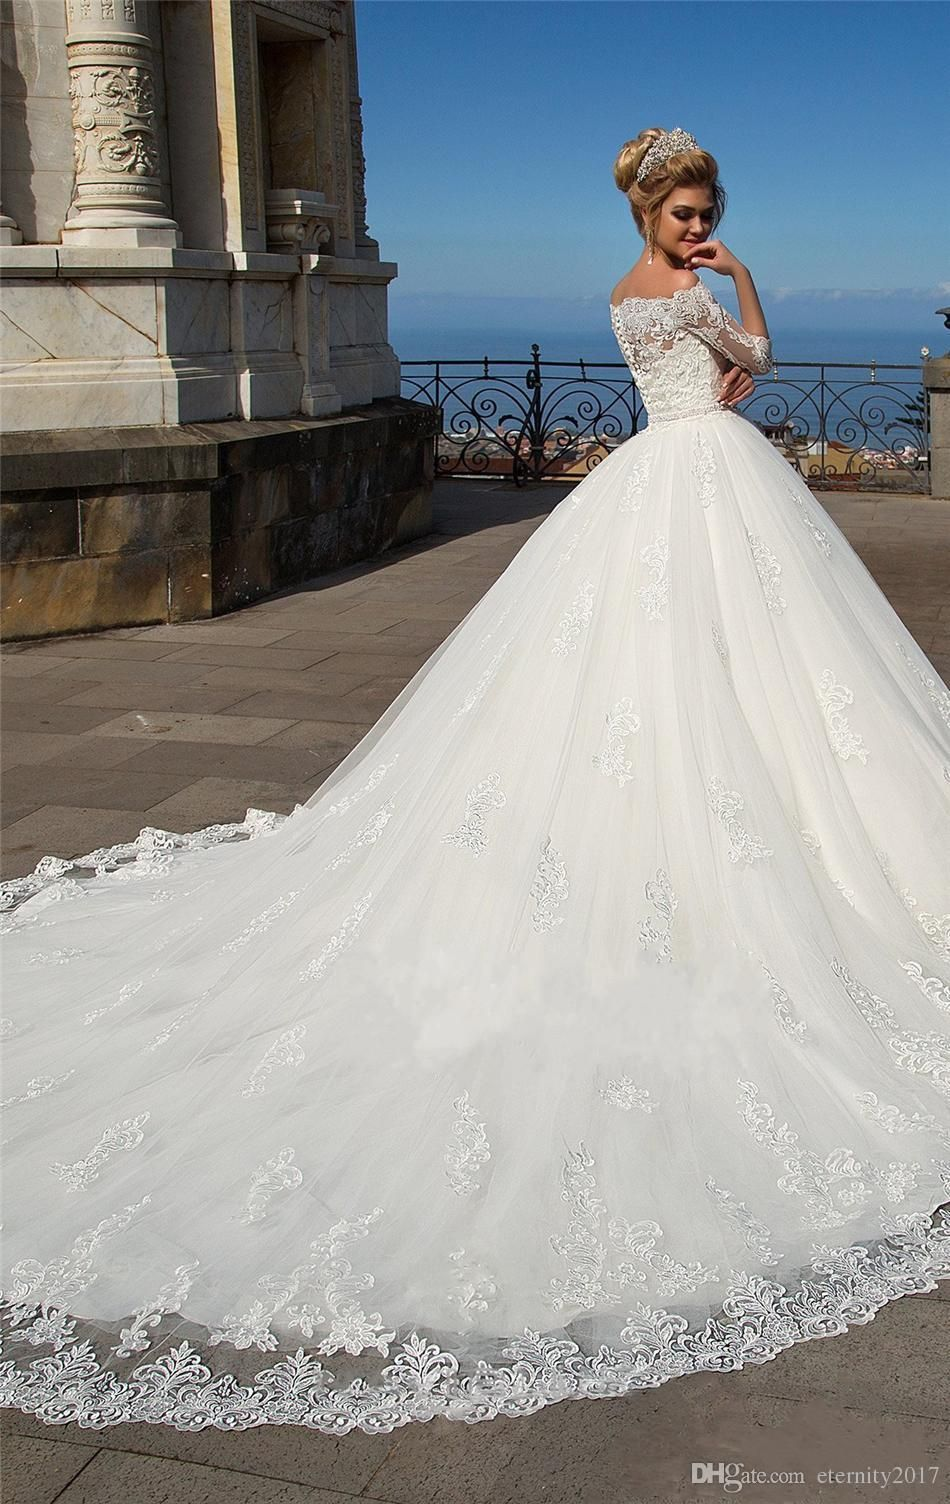 2018 Dhgate Wedding Dress Reviews   Dressy Dresses For Weddings Check More  At Http:/